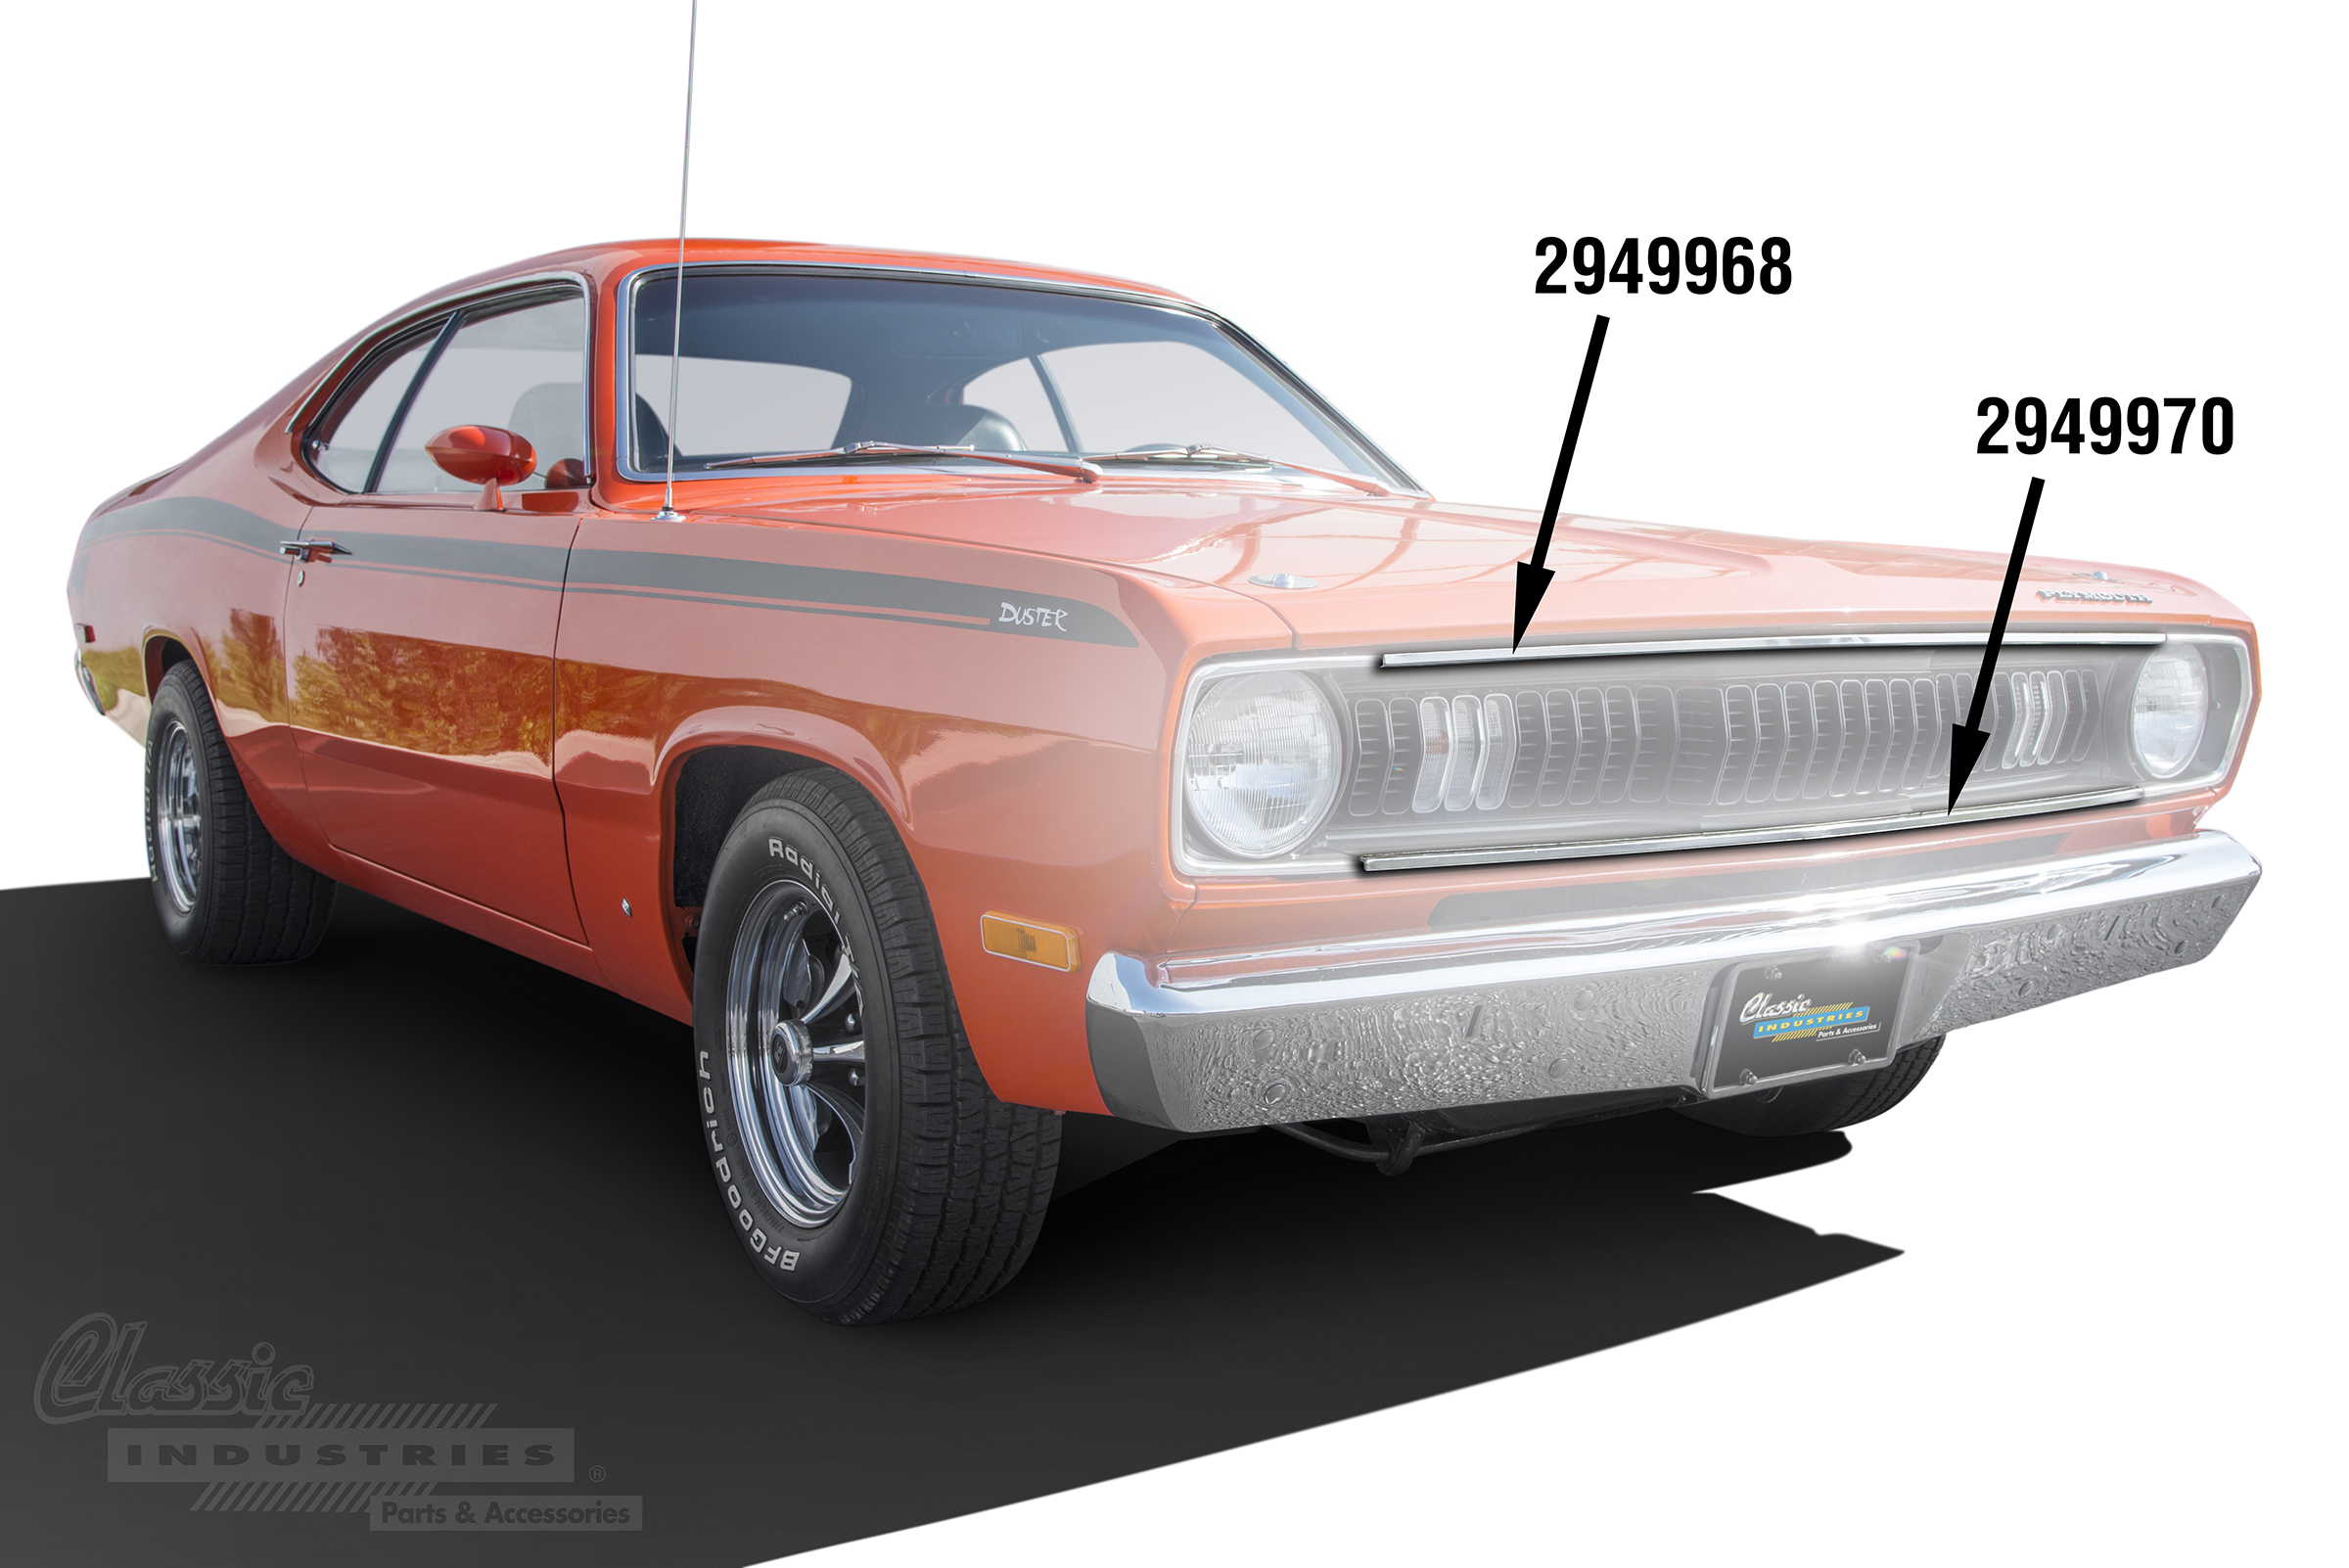 1970 72 plymouth a body owners rejoice classic industries offers rh moparconnectionmagazine com plymouth duster parts ebay plymouth duster parts car